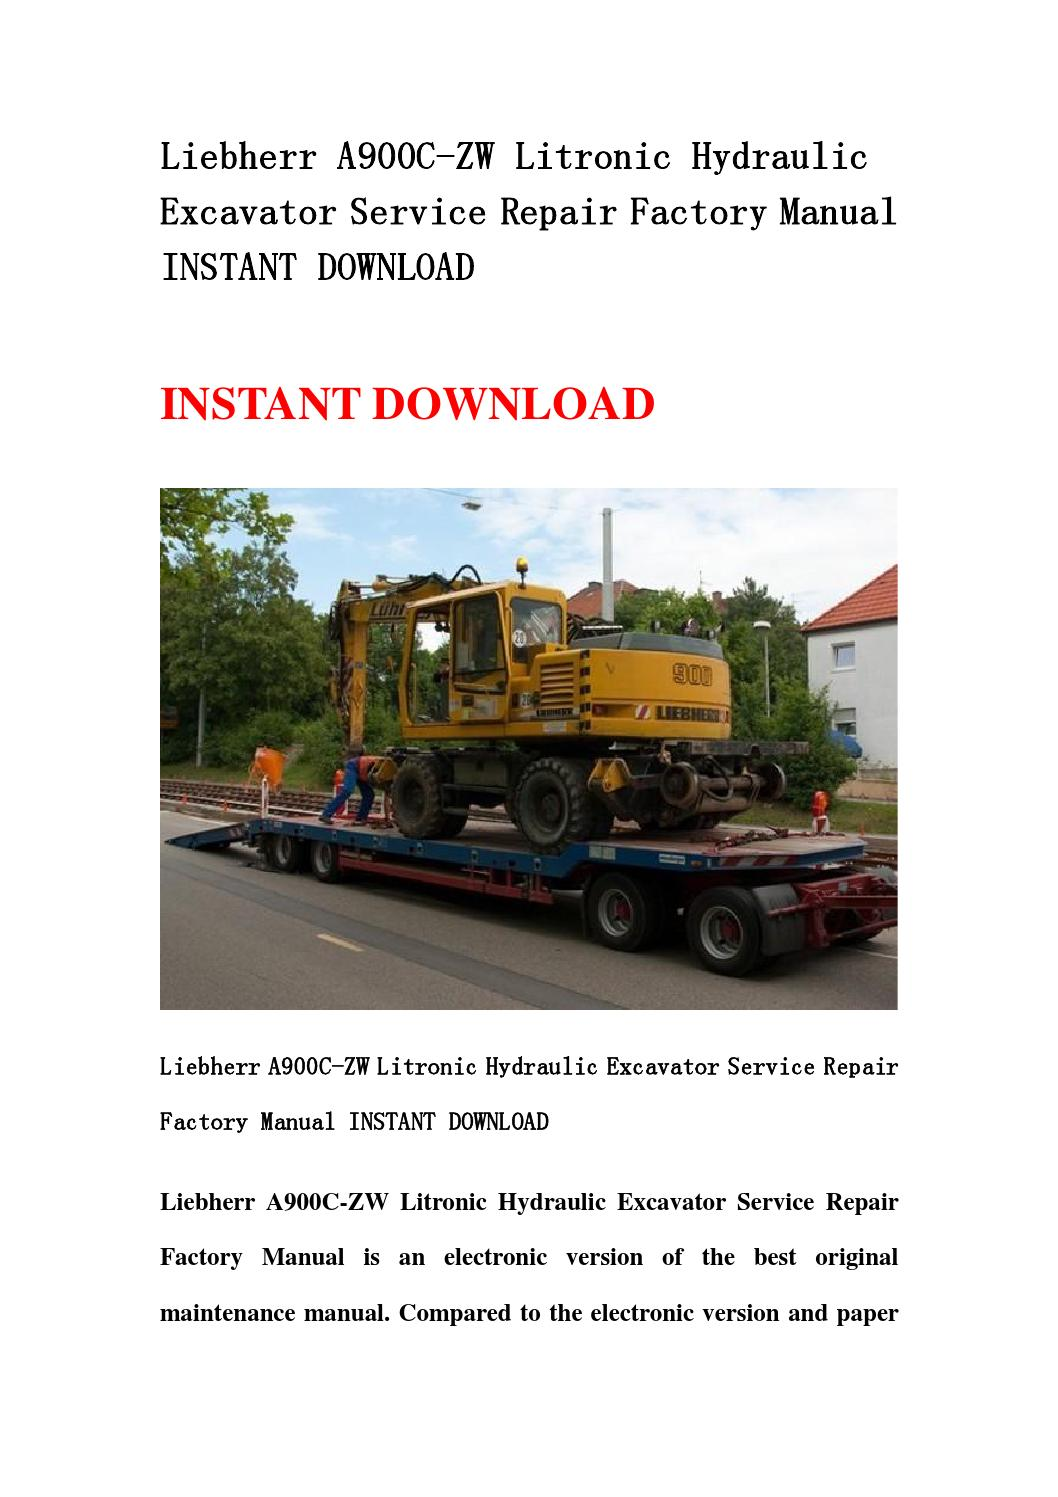 Liebherr A900c Zw Litronic Hydraulic Excavator Service Repair Factory Manual Instant Download By